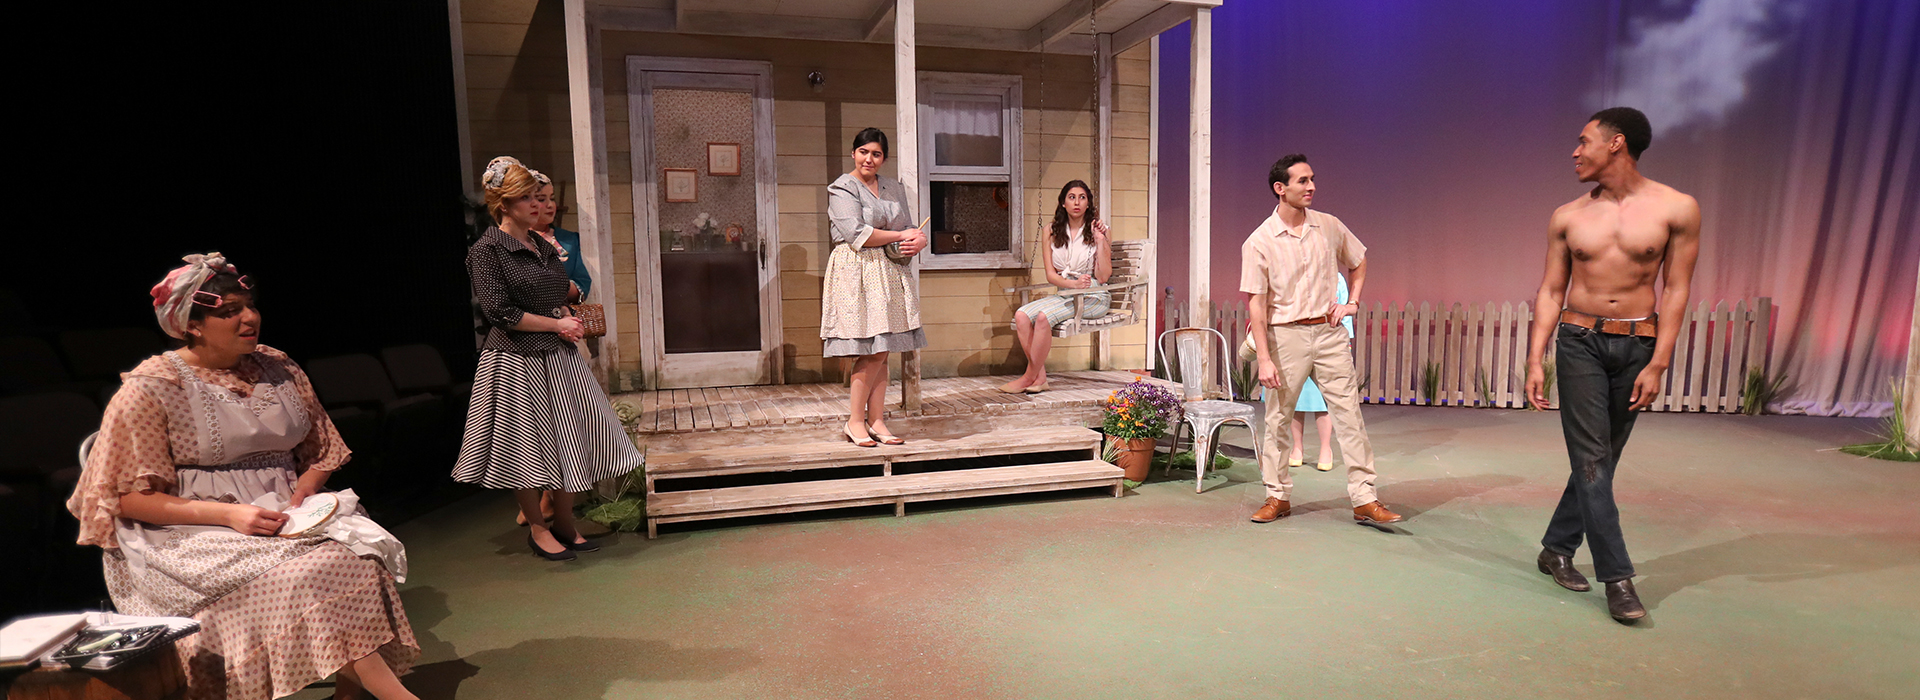 CSUSB Department of Theatre Arts presents 'Picnic'